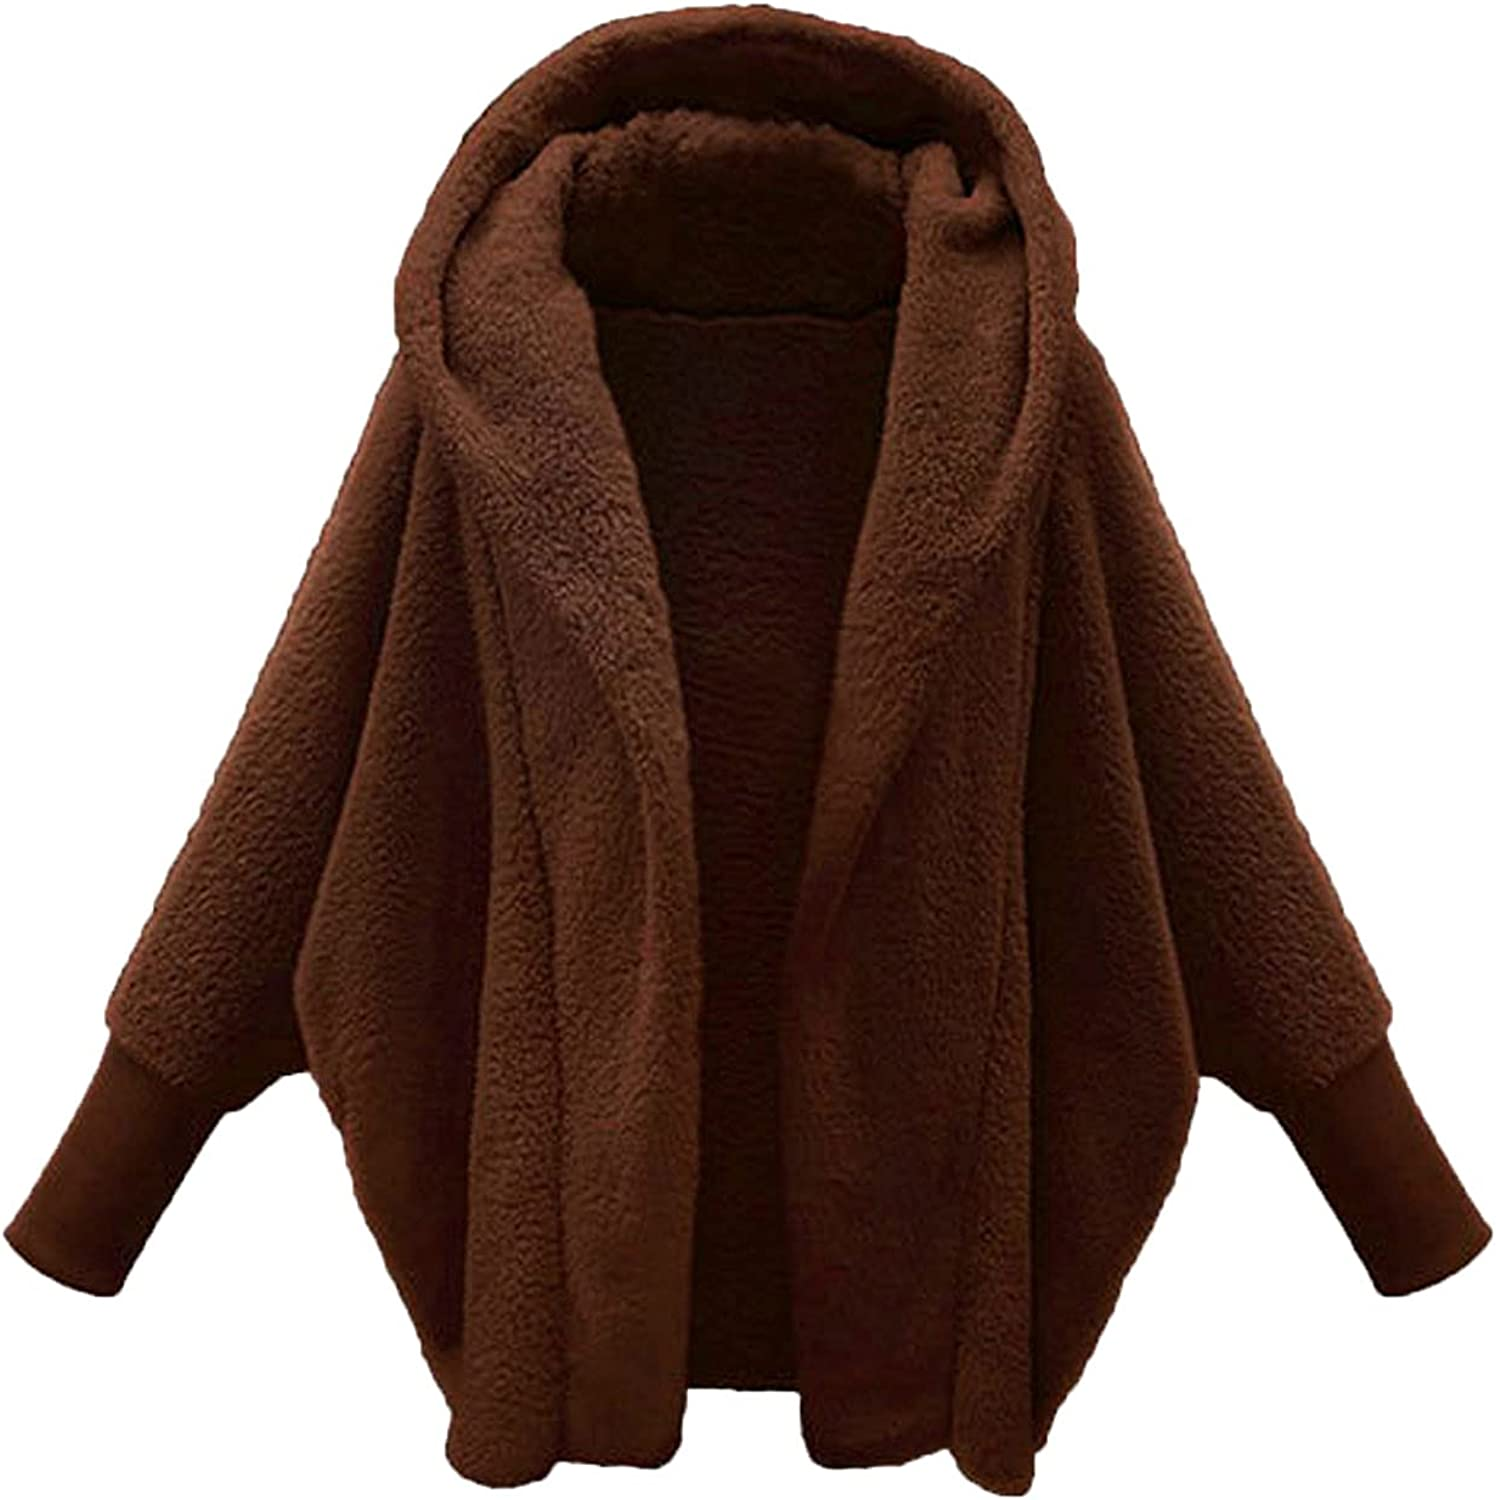 Women's Winter Furry Cardi Tops Hooded Challenge the lowest price Long Ou Outlet SALE Basic Sleeve